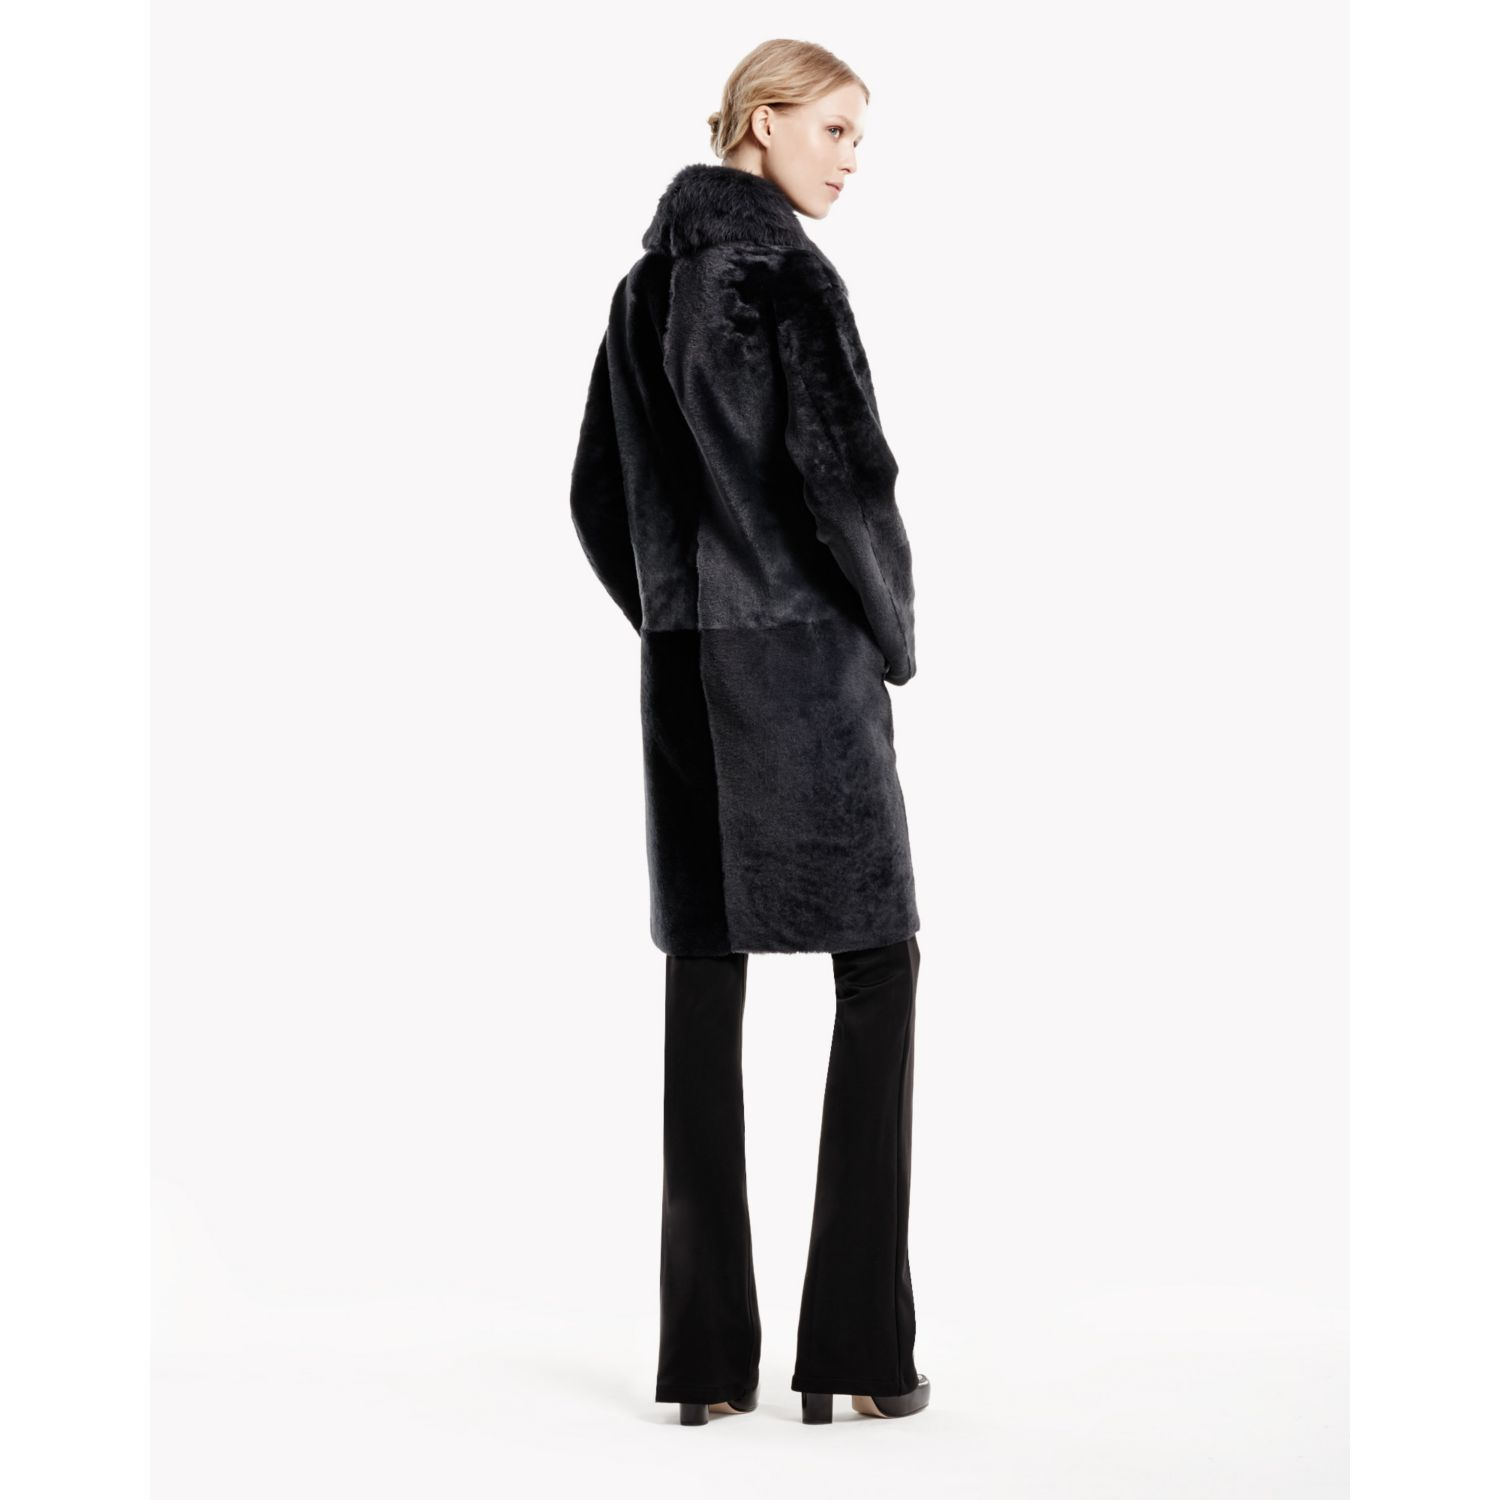 Theory Jathan Coat In Hollice S Ivory in addition Fur Coats 17 in addition Adam Lippes Leathertrimmed Shearling Coat Green as well Nicholas Knitted Rabbit Fur Jacket For Women together with Id V 78928. on oscar de la renta shearling coat